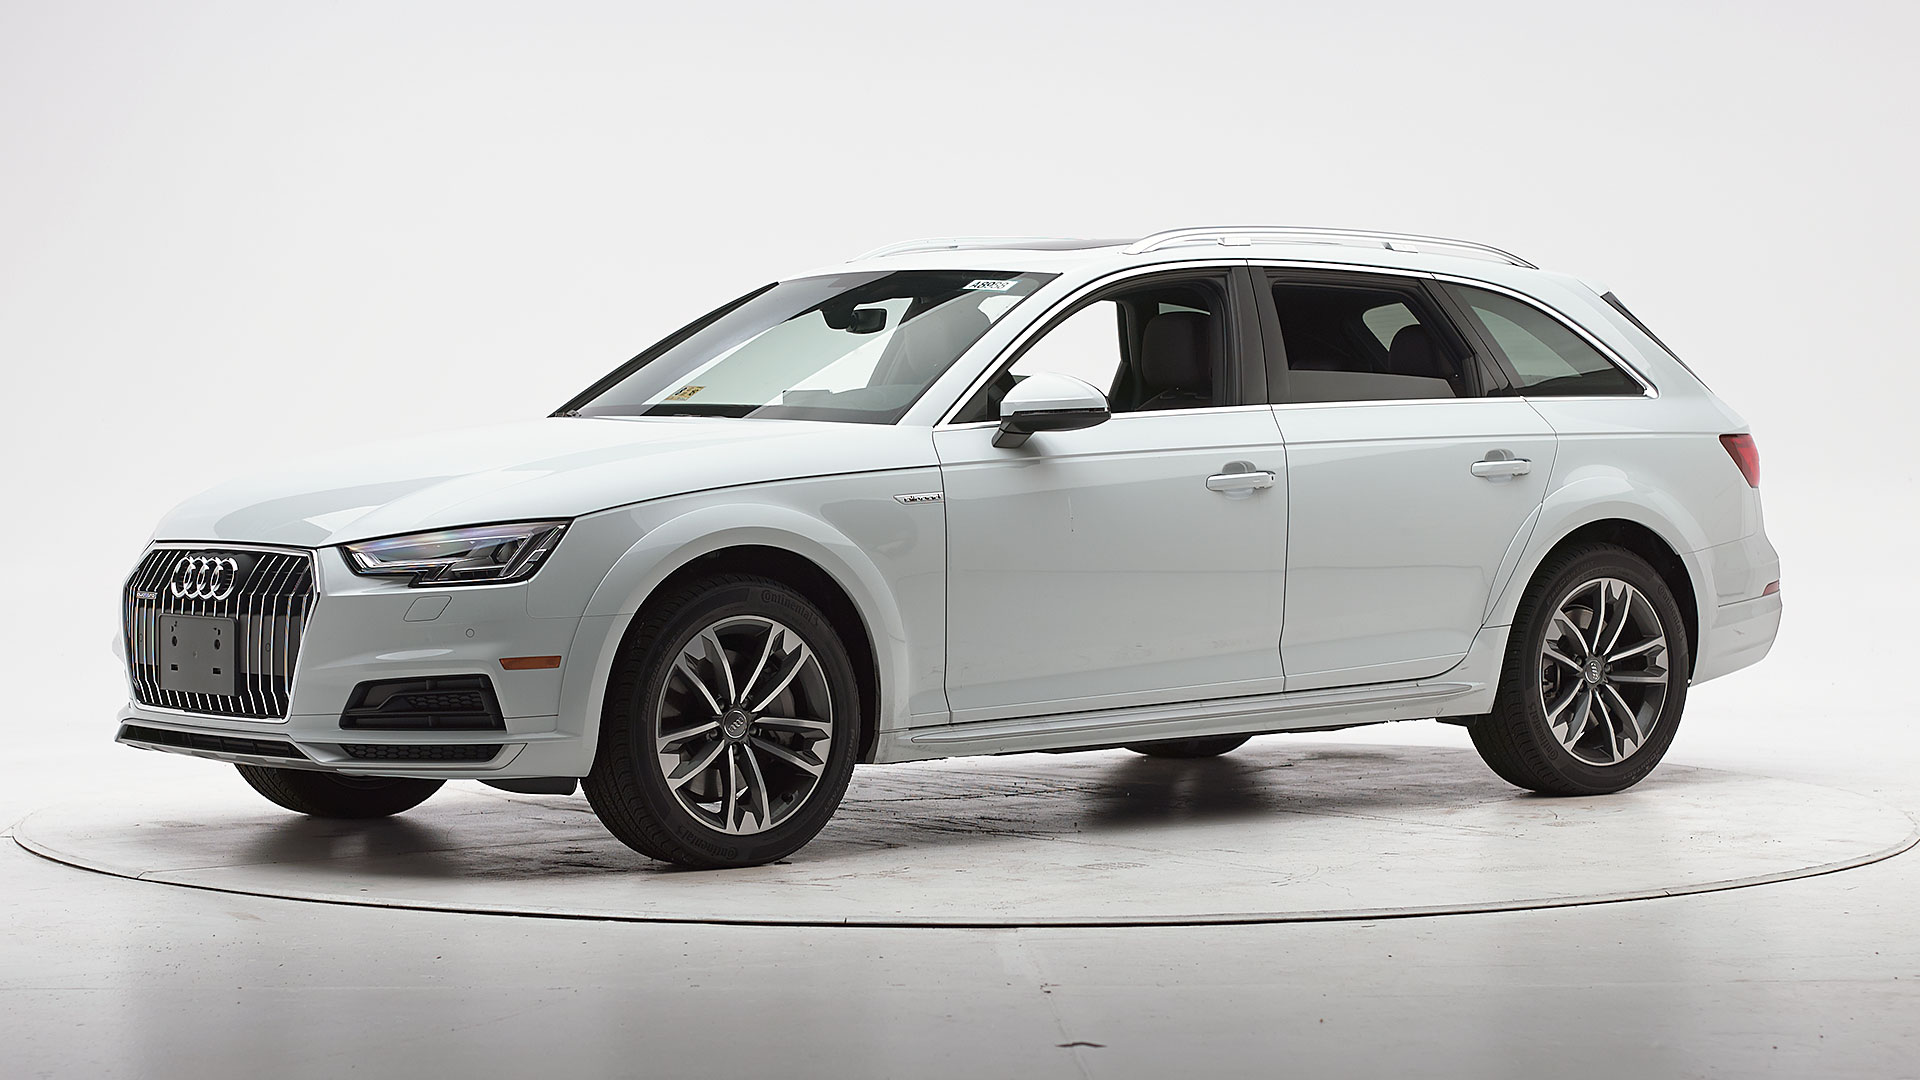 2019 Audi A4 Allroad 4-door wagon